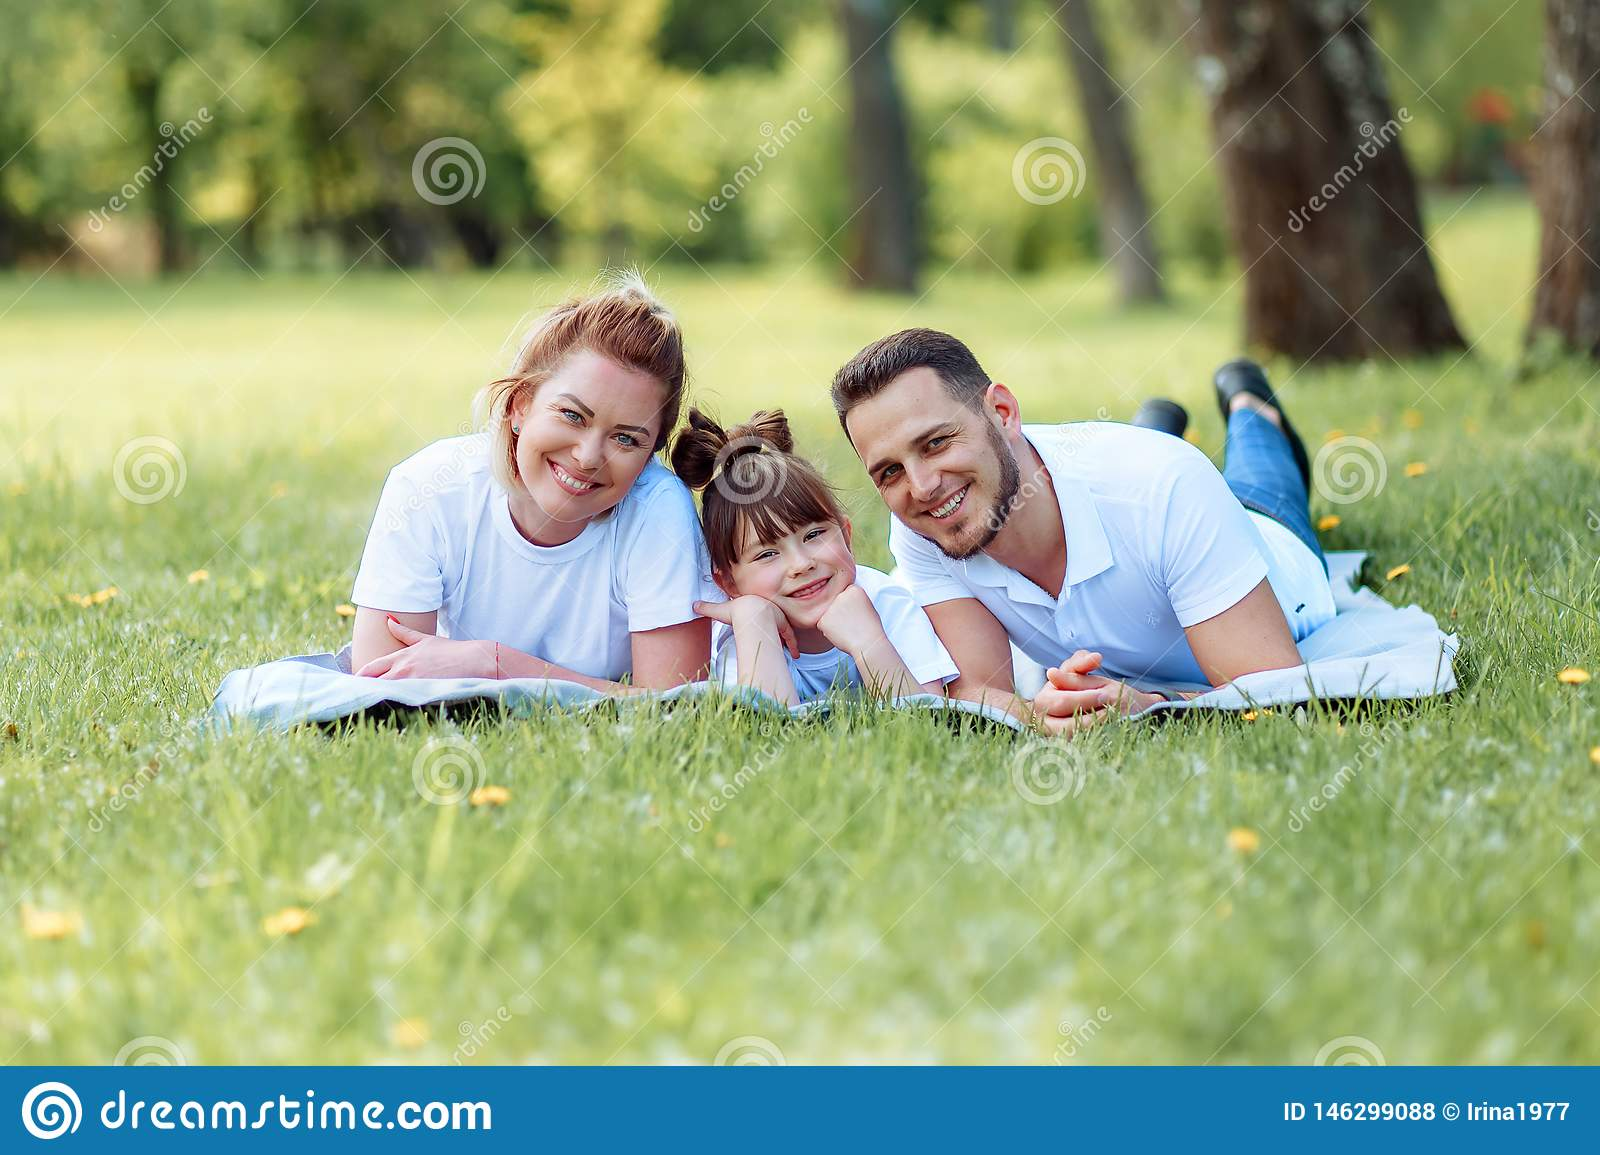 Happiness and harmony in family life. Happy family concept. Young mother and father with their daughter in the park